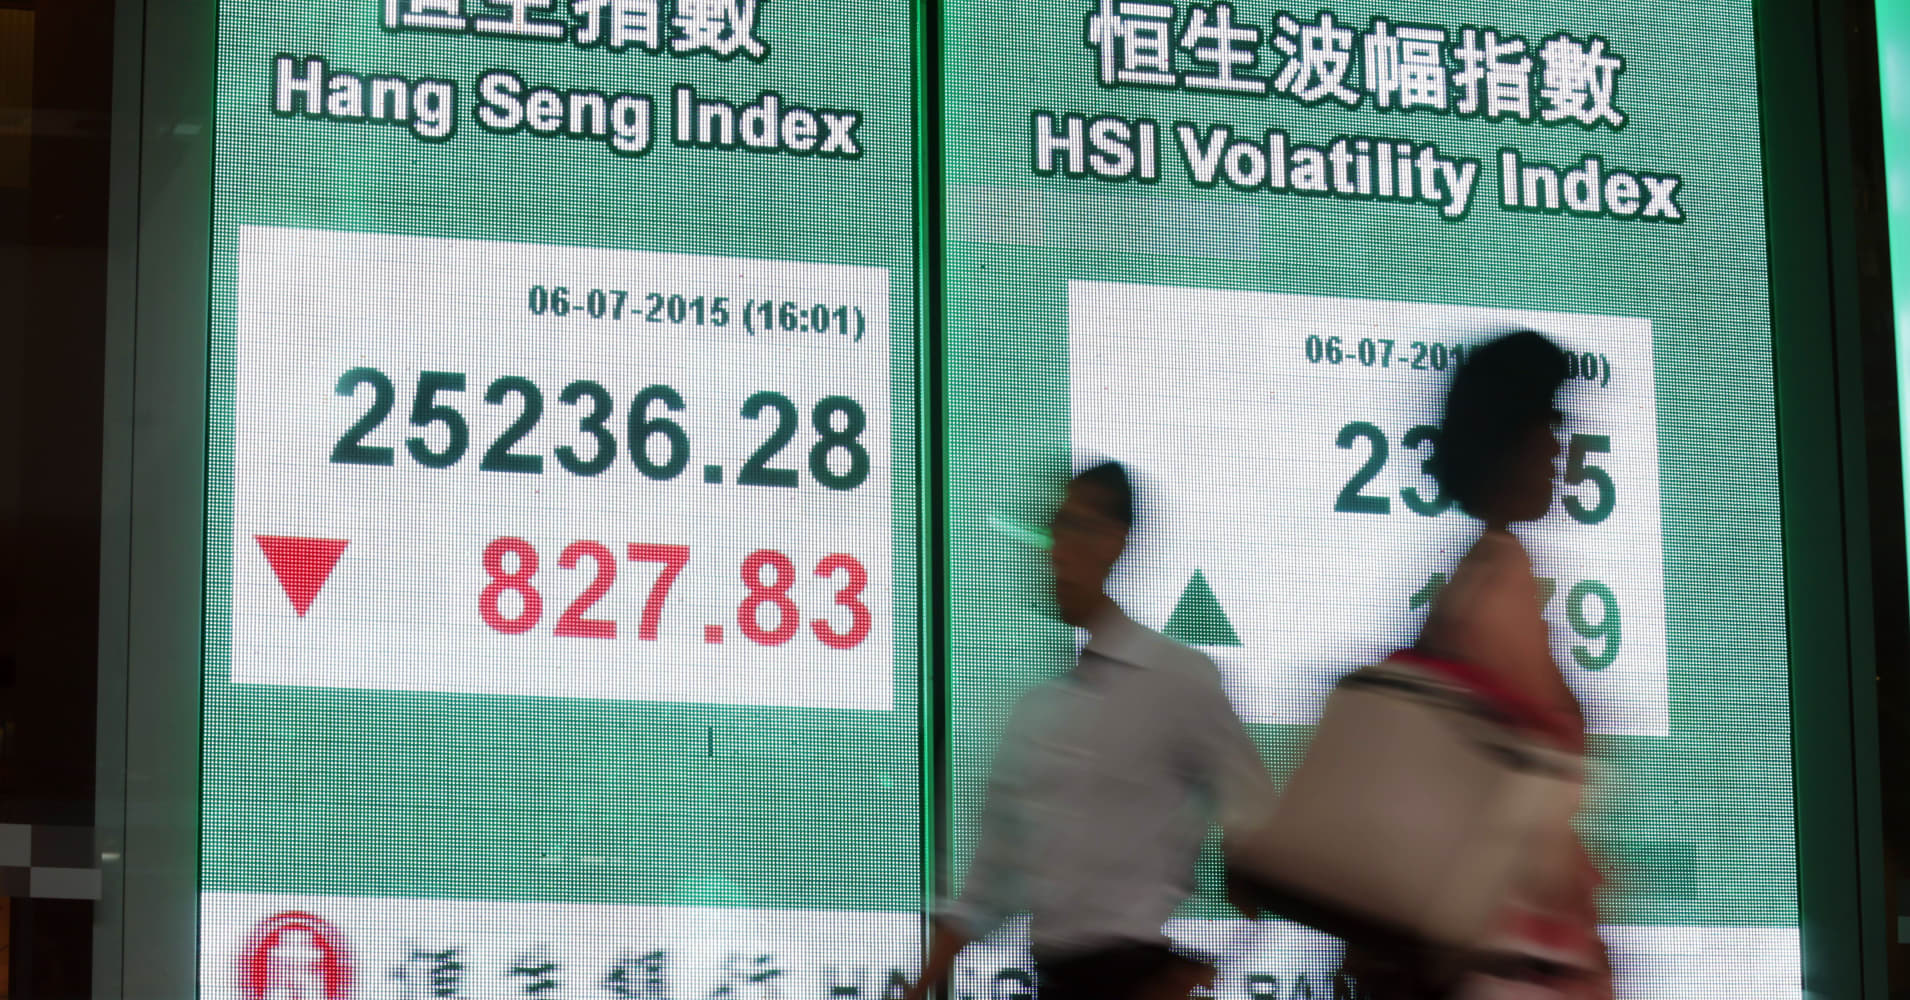 Analysis suggests Hong Kong's market is set to decline